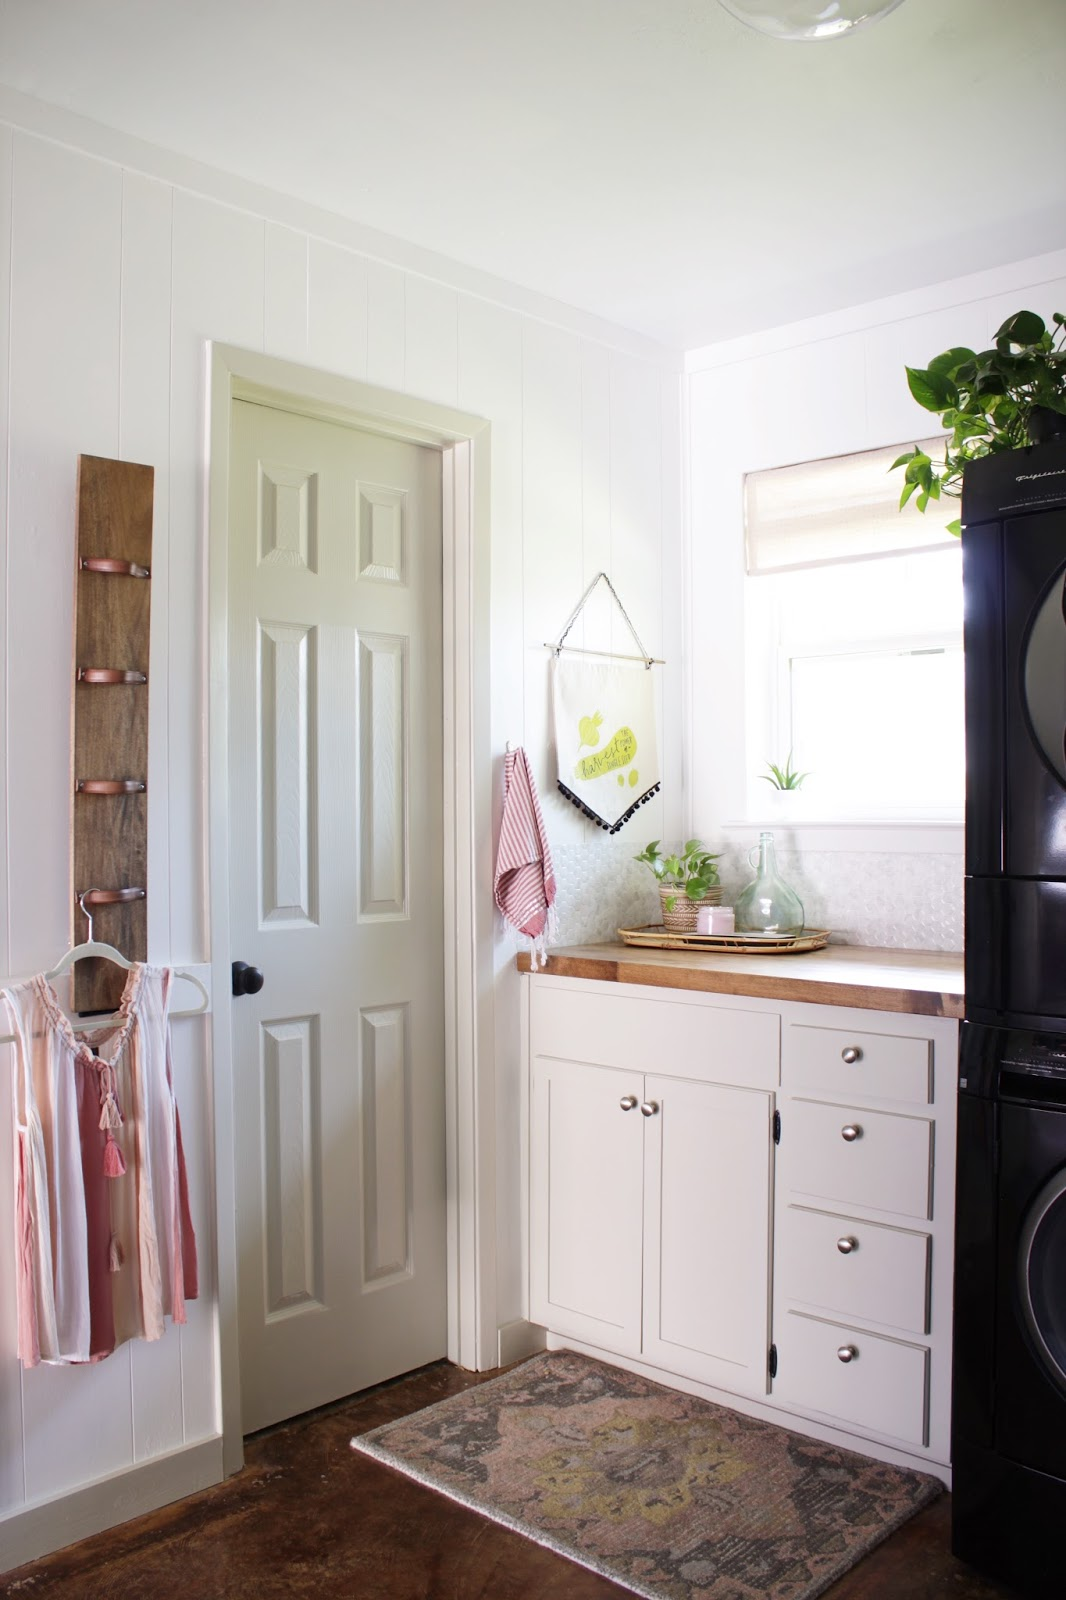 DIY laundry room hanging rack | House Homemade